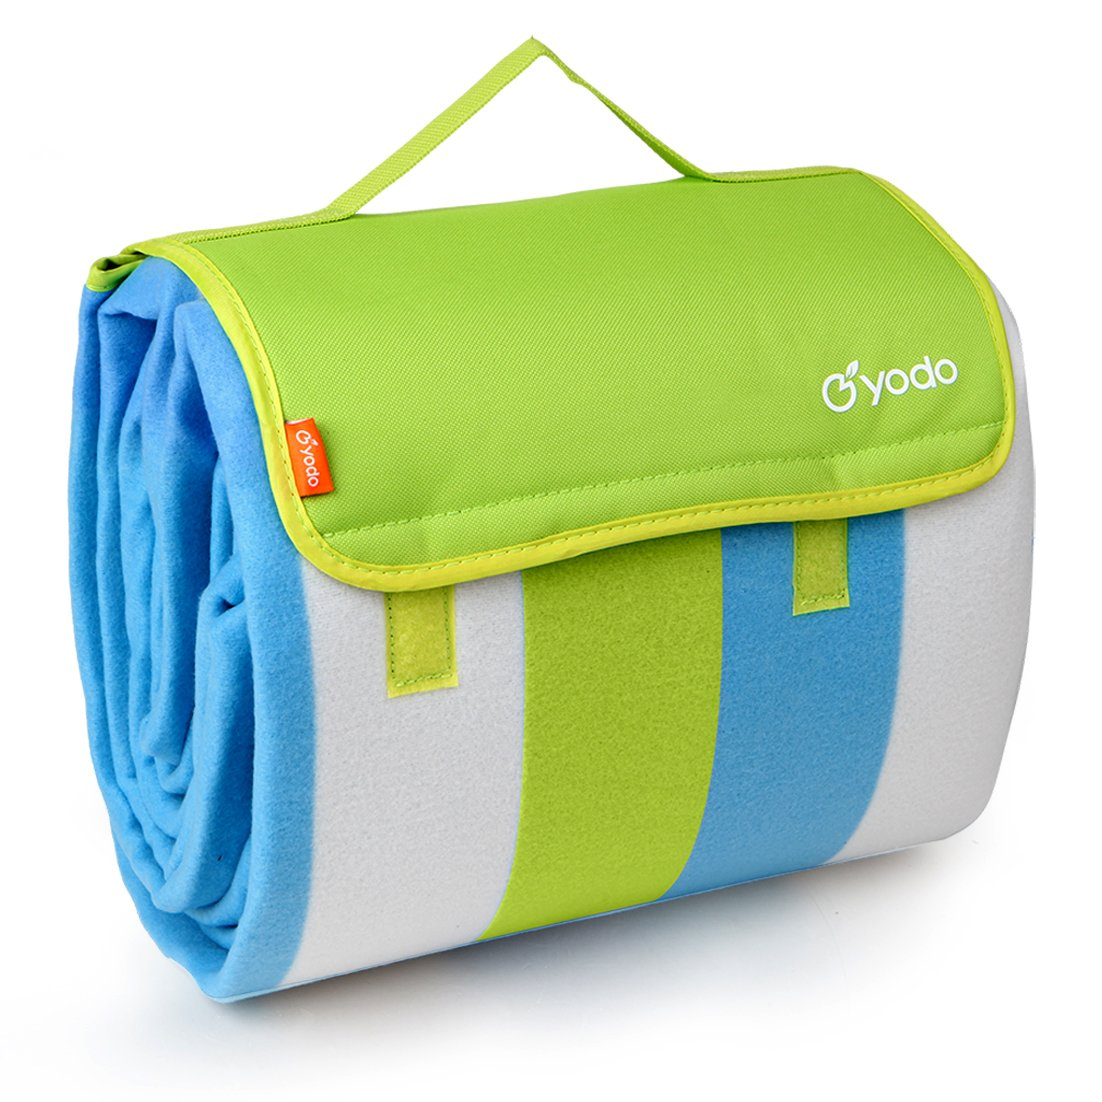 59 Light Weight with Soft Fleece and Padding Yodo XXX-Large Outdoor Waterproof Picnic Blanket Tote 79 x 79